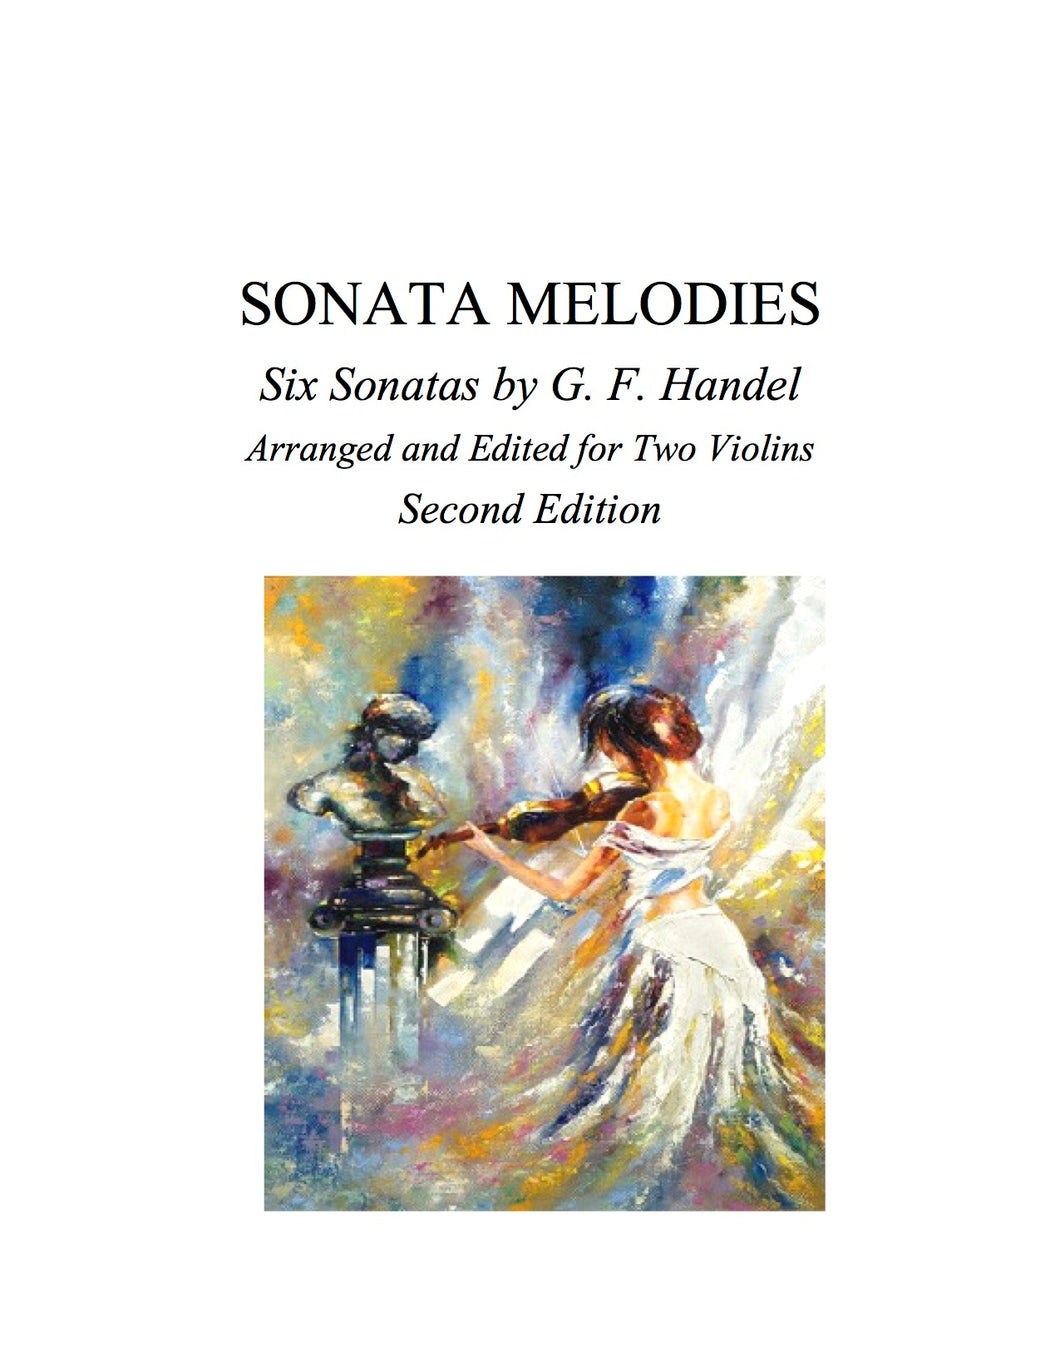 007 - Sonata Melodies For Two Violins (6 Handel Sonatas)